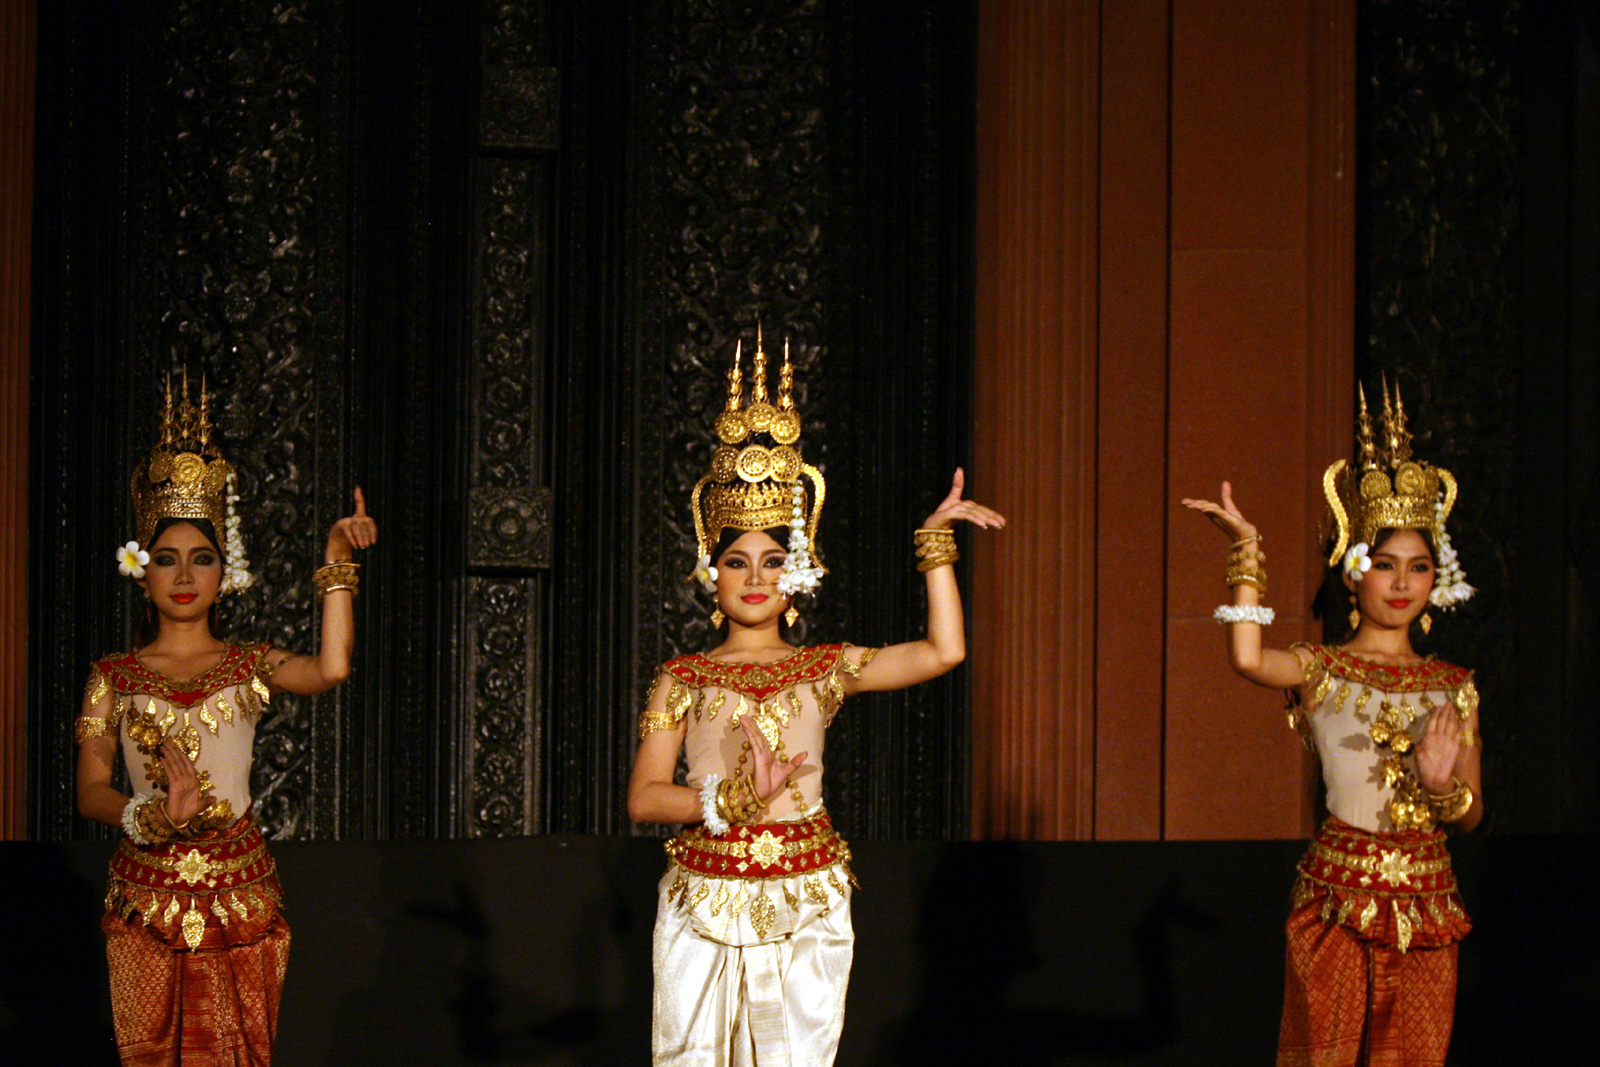 Apsara dancers at the Bassac Theatre in Phnom Penh. Photo taken by Remi Jouan on January 5, 2012.